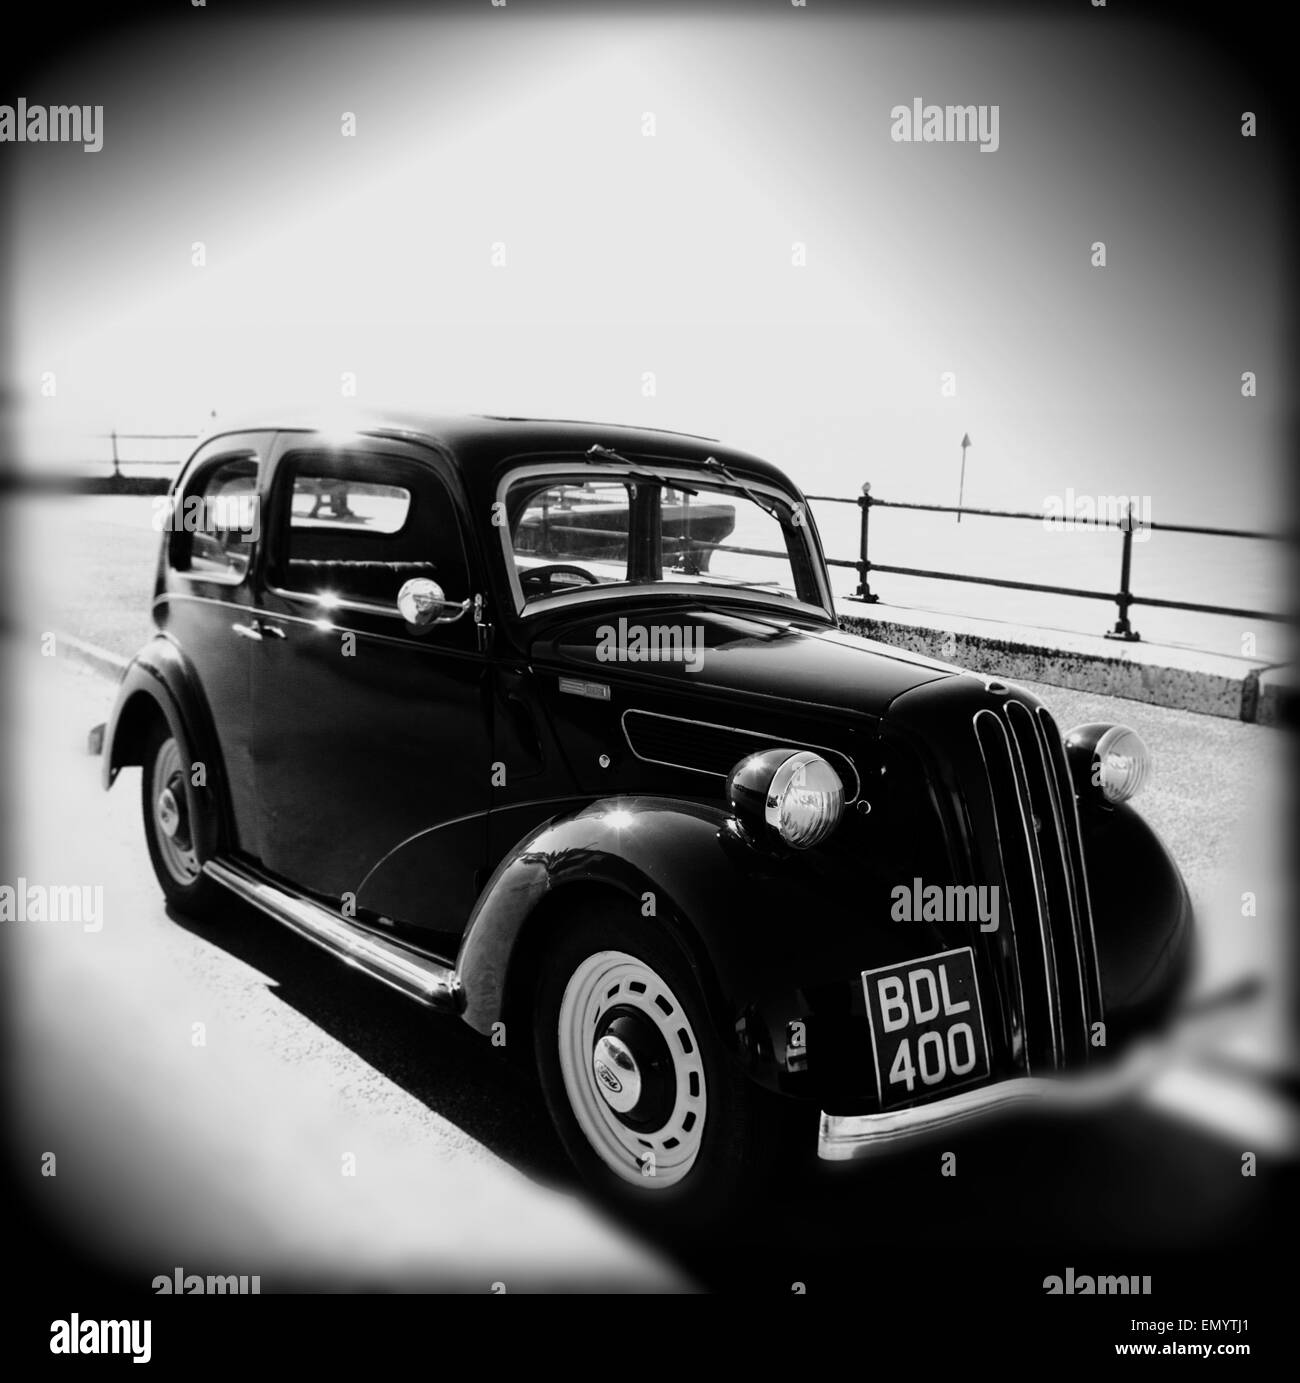 1930's Car Uk Stock Photos & 1930's Car Uk Stock Images